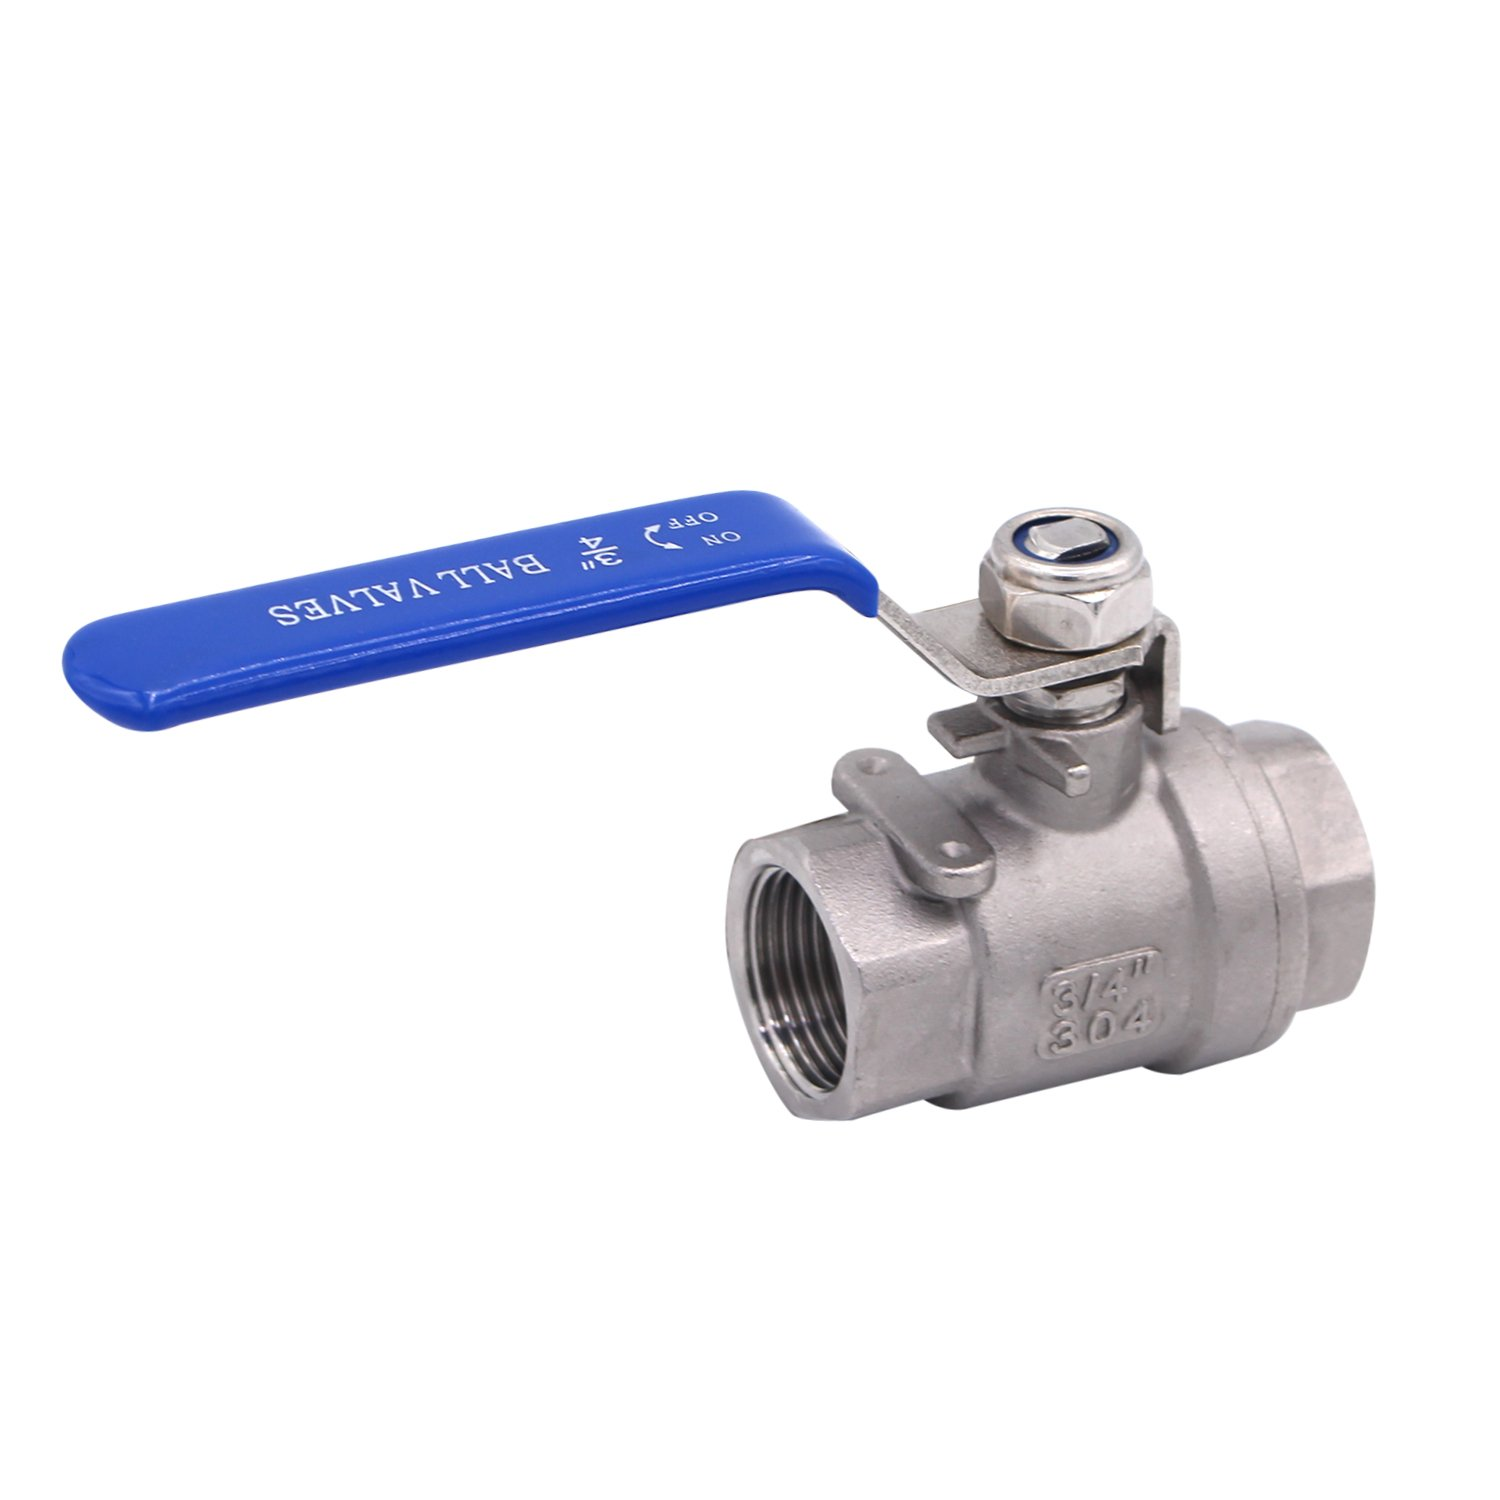 """Dernord Full Port Ball Valve Stainless Steel 304 Heavy Duty for Water, Oil, and Gas with Blue Locking Handles (3/4"""" NPT)"""